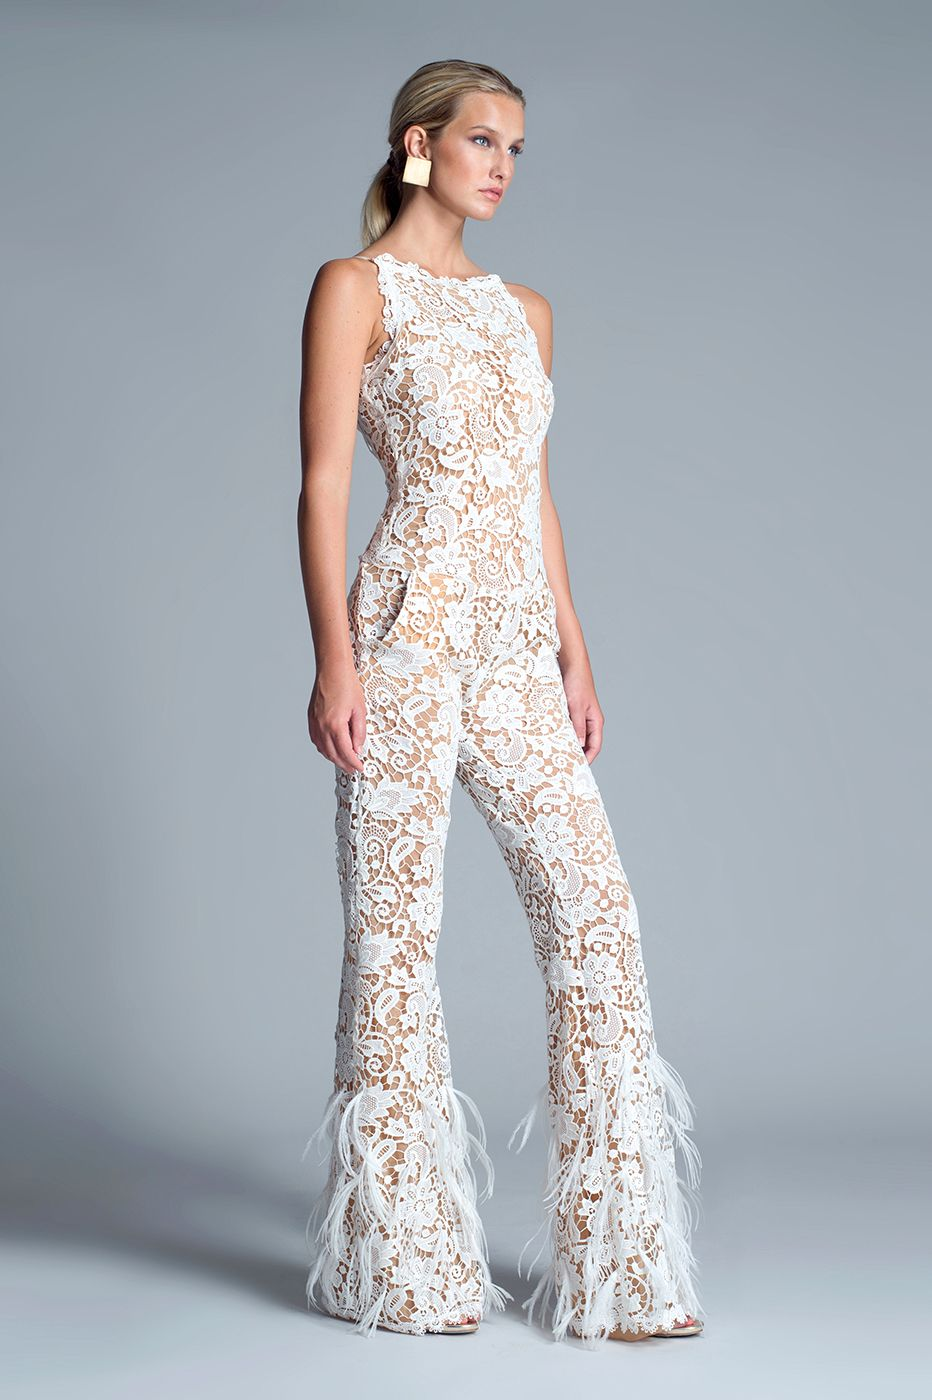 1cce7a1066f Julian Chang Chanel Jumpsuit - Long and elegant lace jumpsuit featuring  scoop neckline. Pockets at sides. No feathers attached.